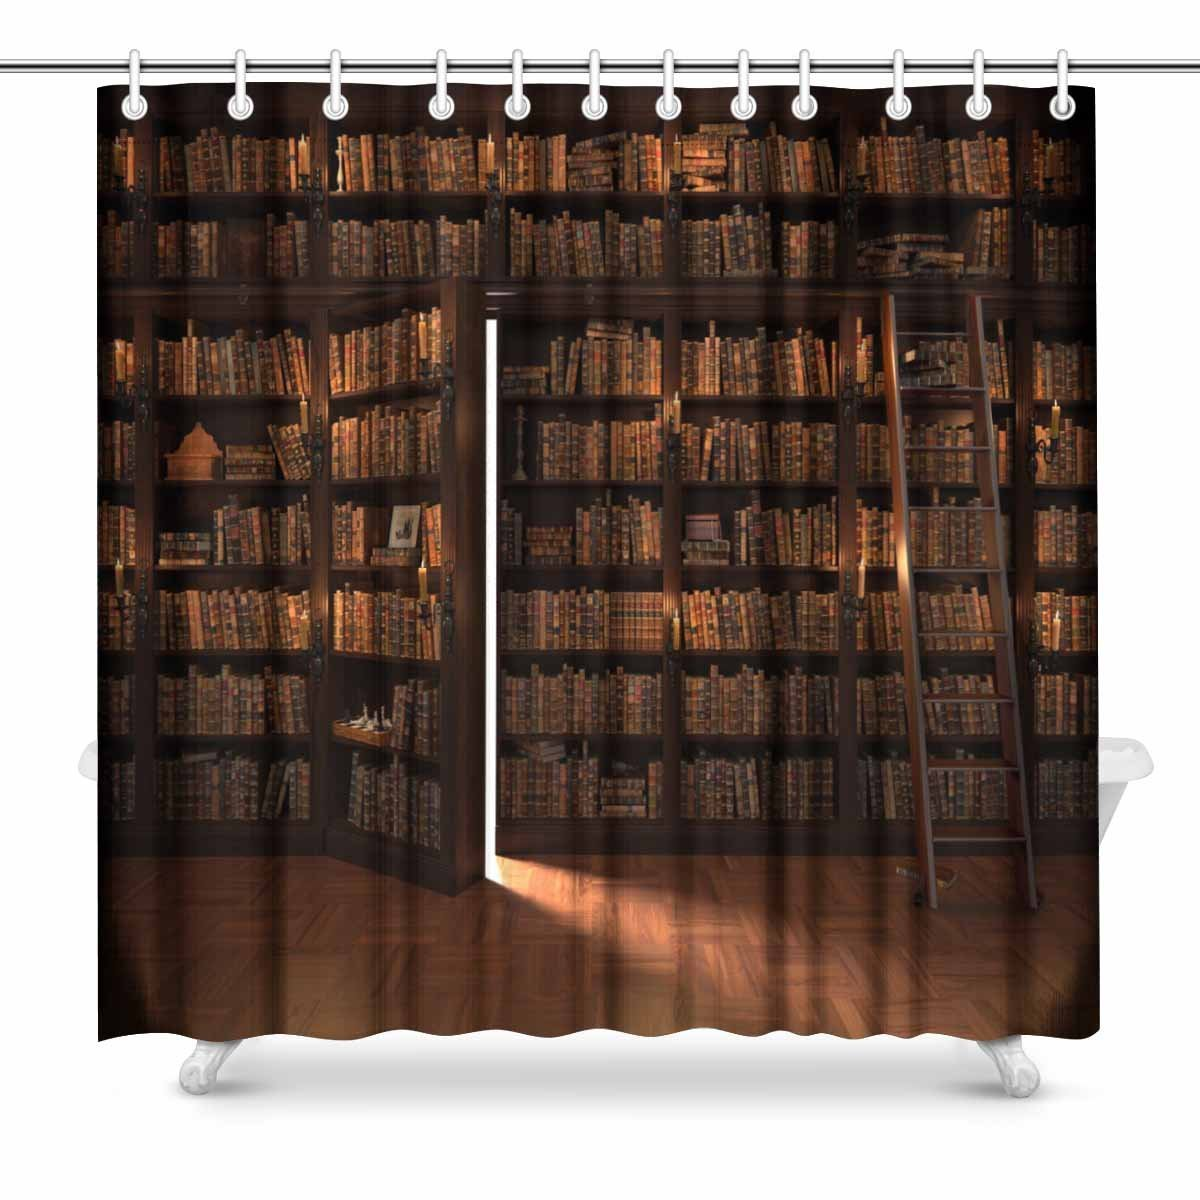 Us 17 85 4 Off Aplysia Secret Door In The Bookcase Mysterious Library With Candle Lighting Art Decor Print Bathroom Shower Curtains In Shower